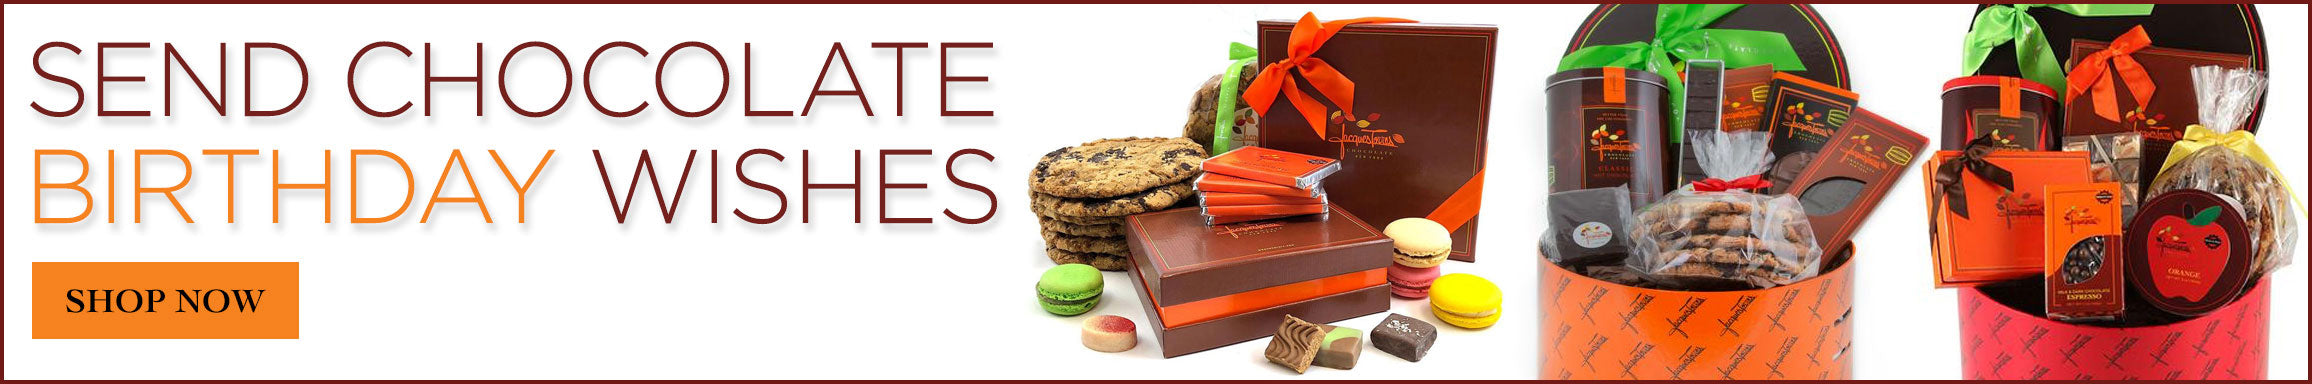 Send Birthday Gifts from Jacques Torres Chocolates